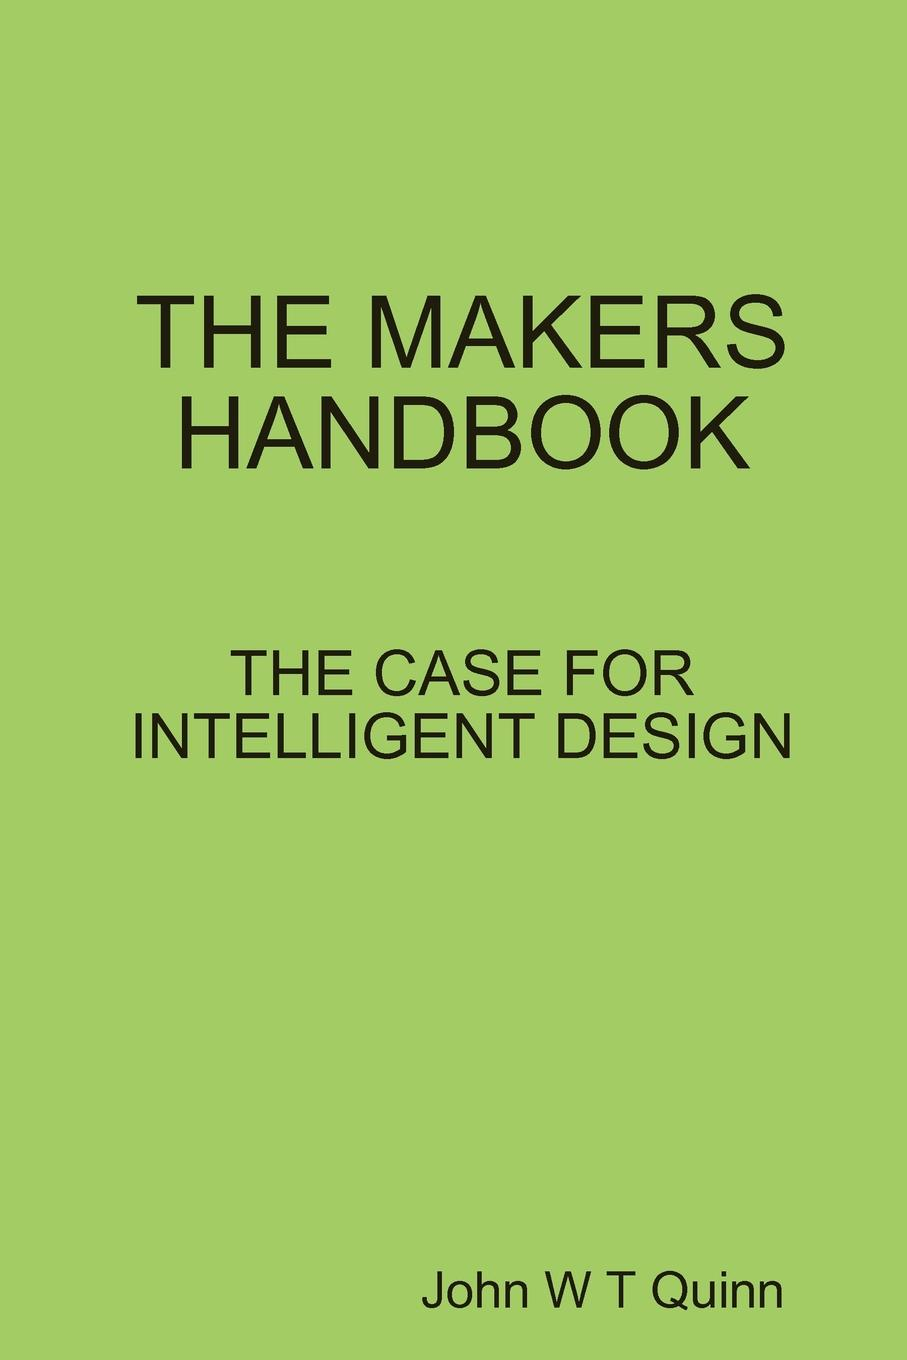 JWT QUINN THE MAKERS HANDBOOK baumer stefan handbook of plastic optics